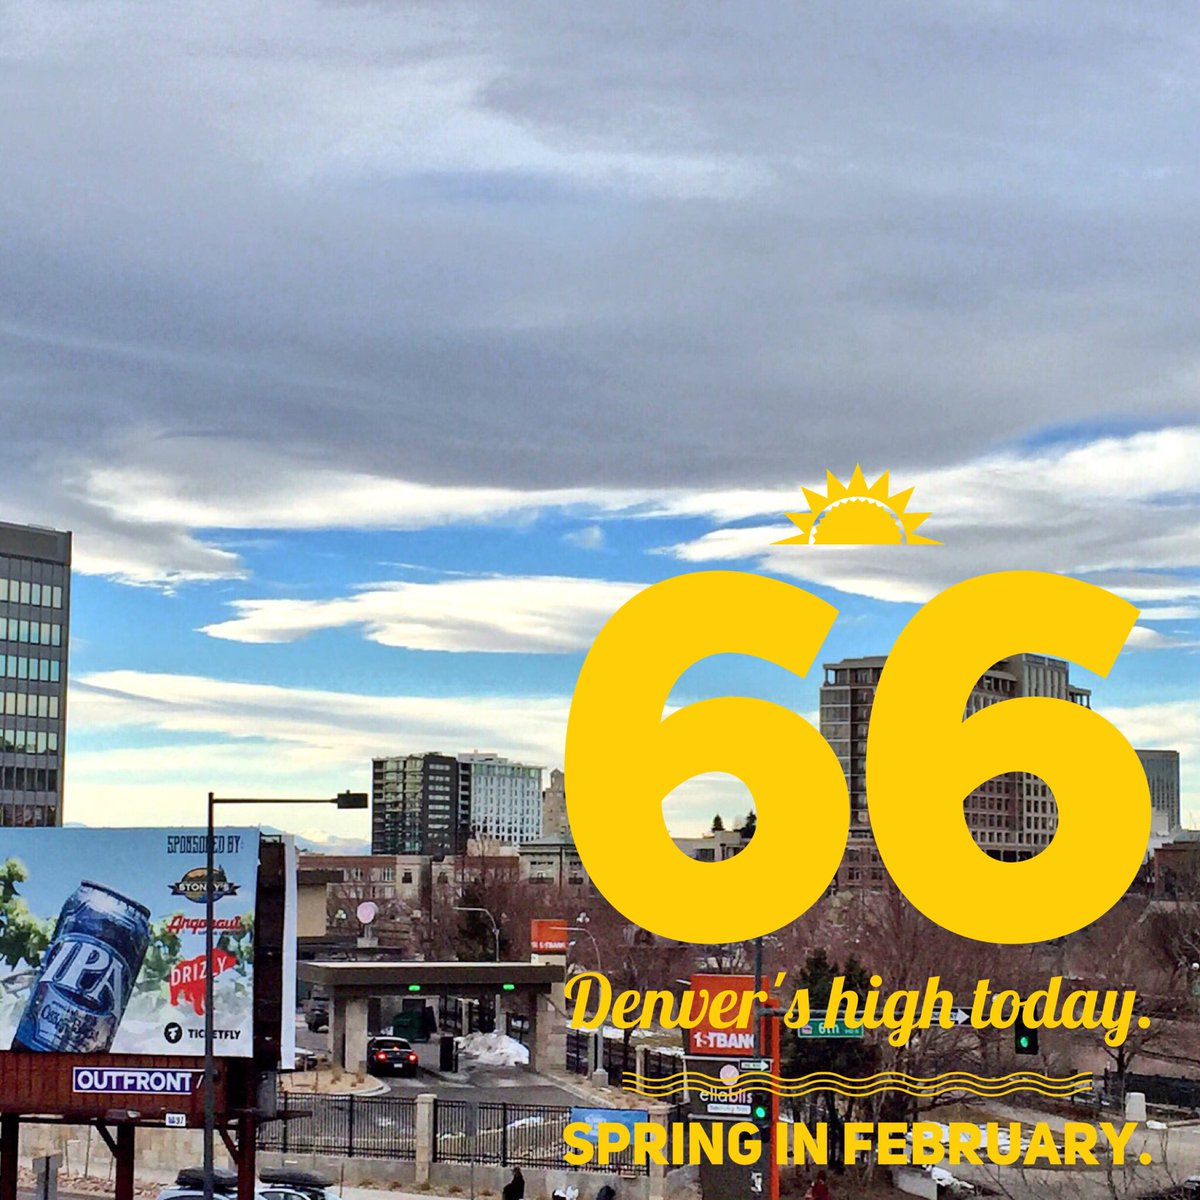 Snow? What snow! Taste of spring in Mile High City today. High 66!